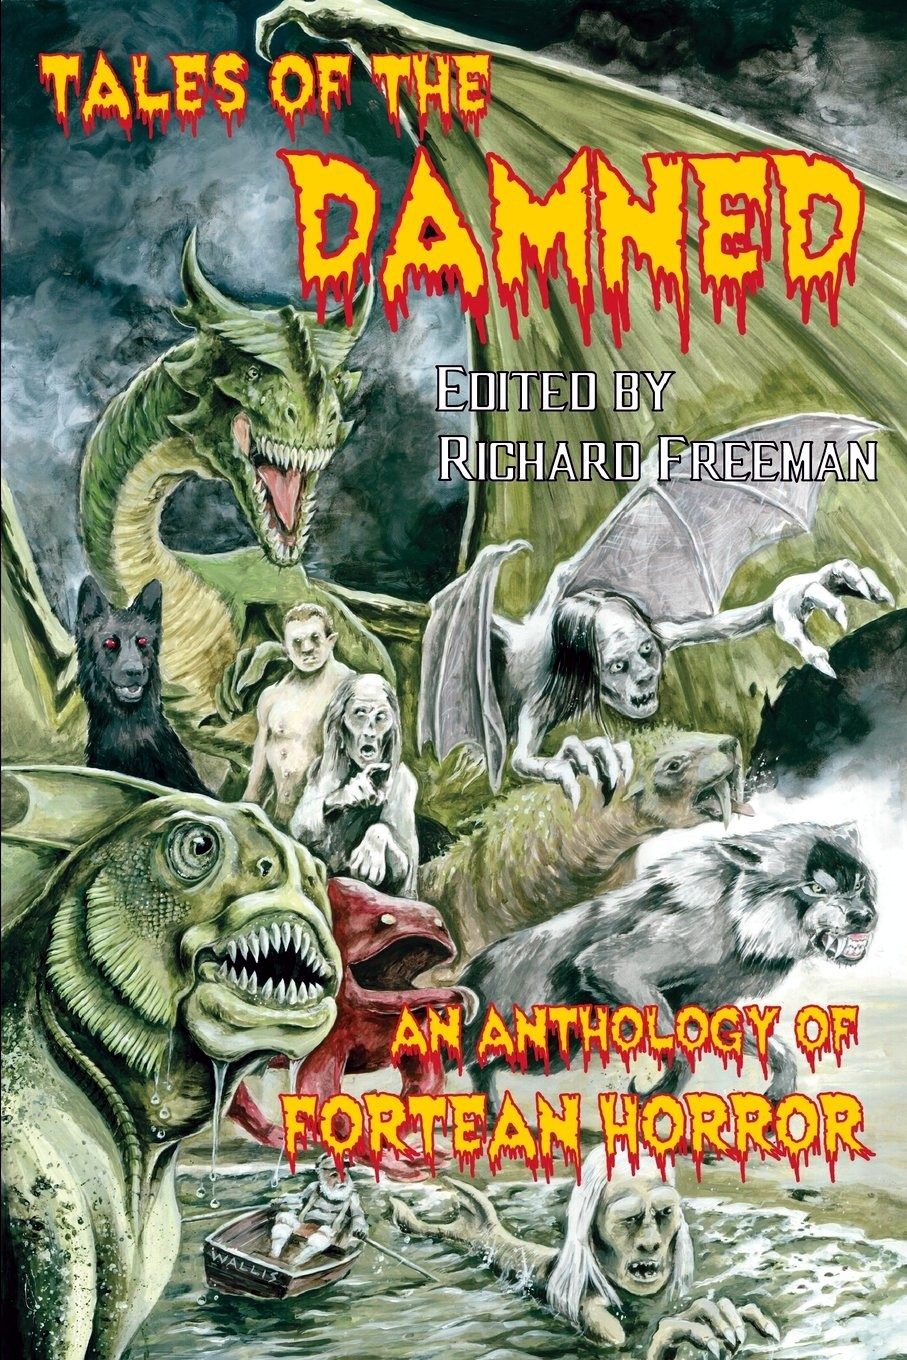 Tales of the Damned: An Anthology of Fortean Horror